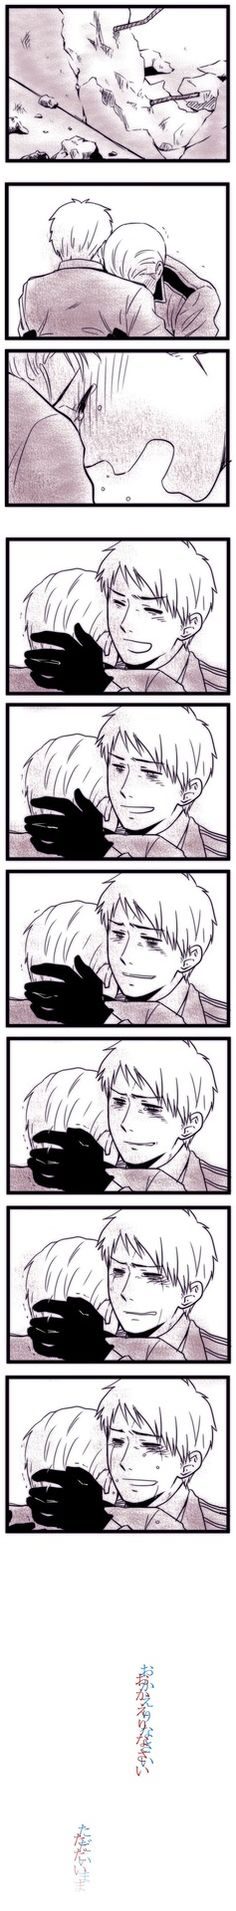 The reunion of Prussia and Germany when the Berlin Wall was gone ;-;